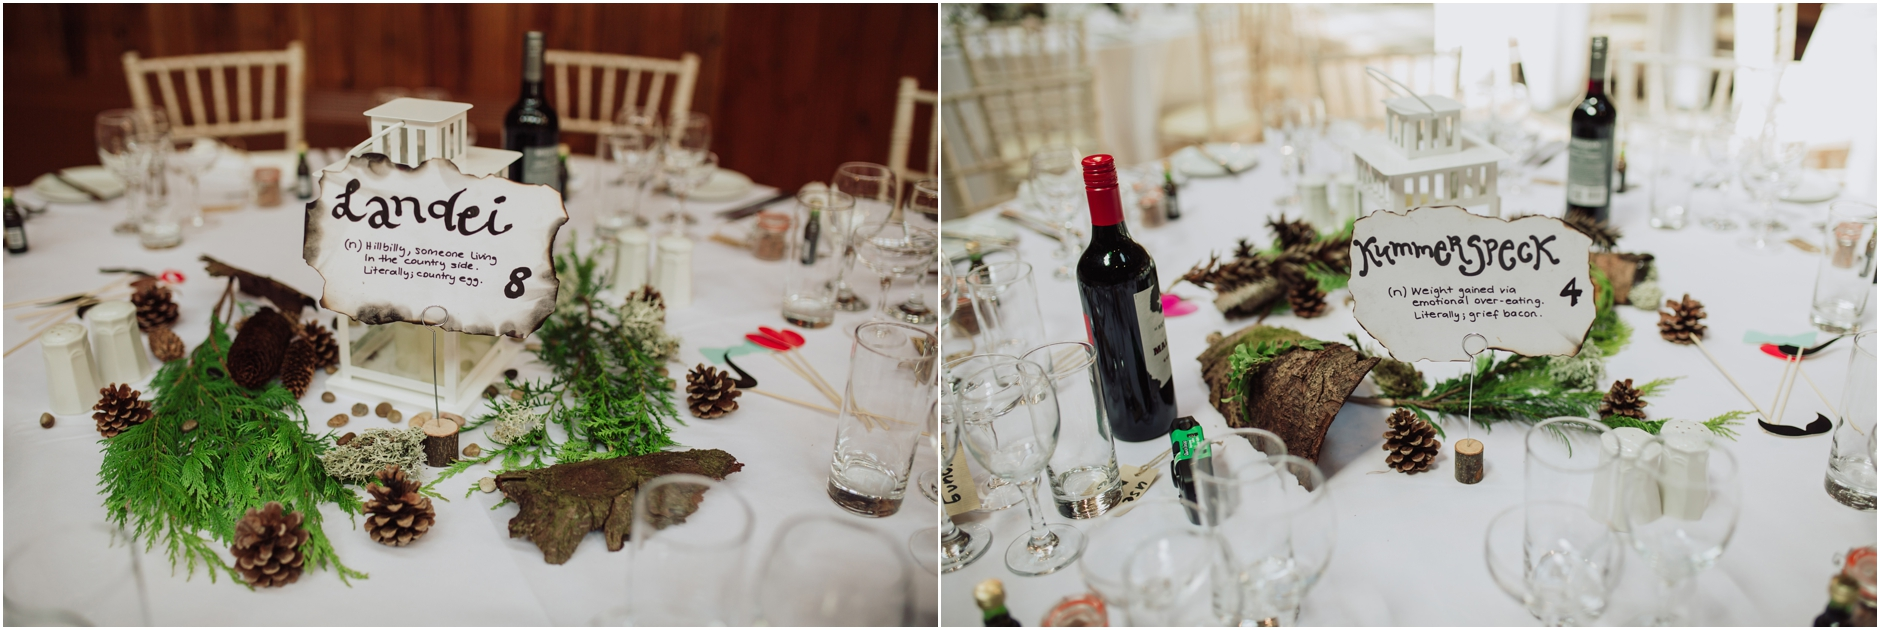 mar lodge wedding scottish highlands cairngorms wedding photographer